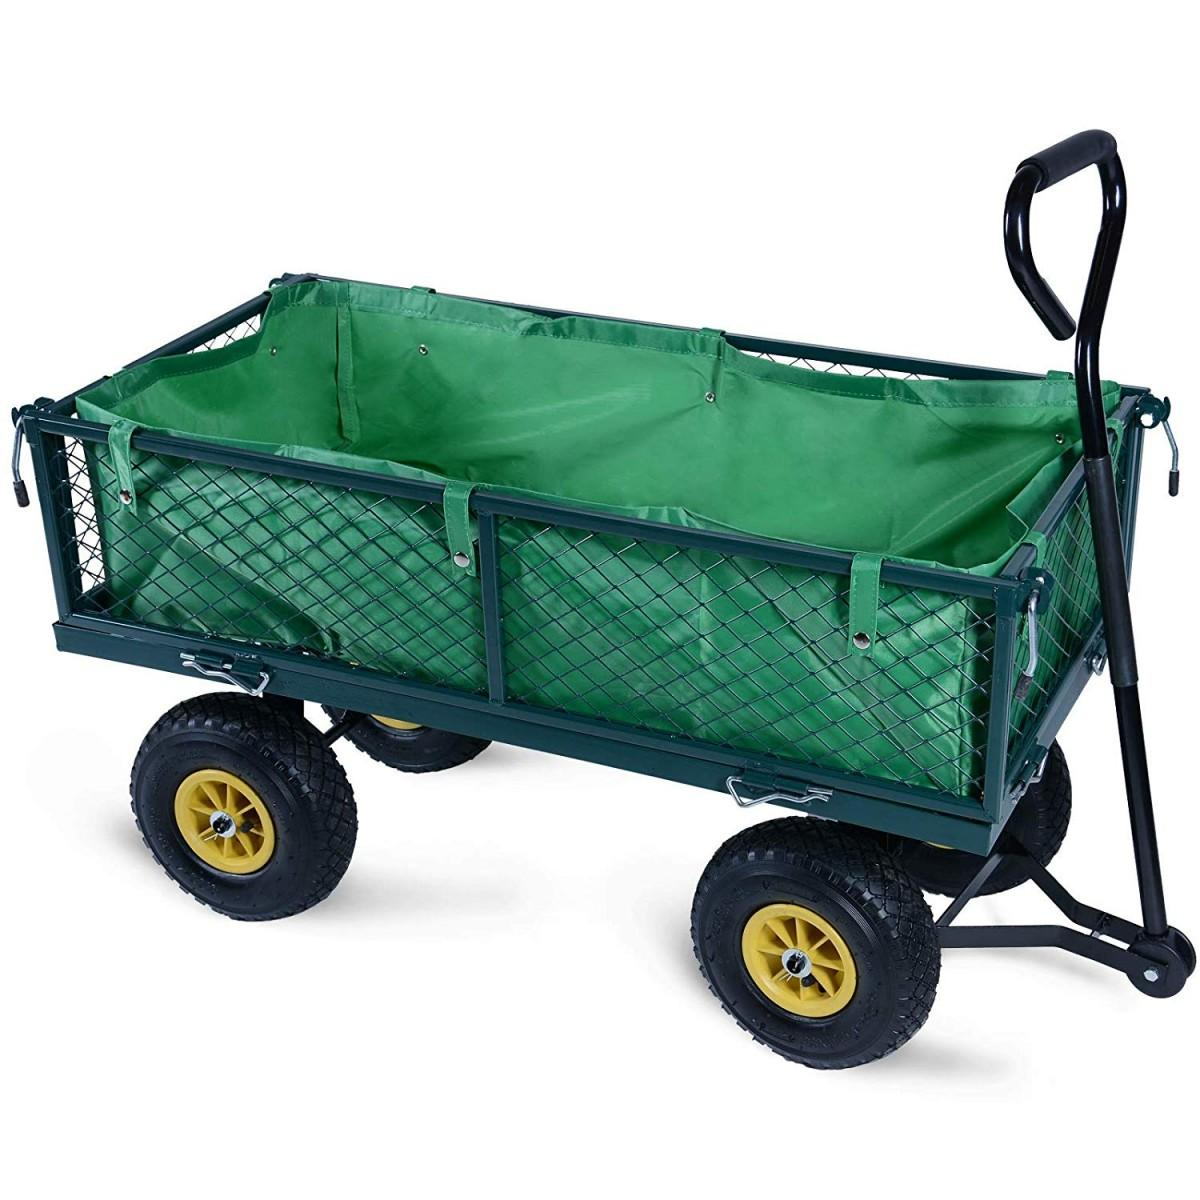 handcart folding side walls, 4 wheels, max. 350 kg, 114 x 52 x 88 cm, choice of colours for hand cars, garden trailers, transport cars, beach trolleys